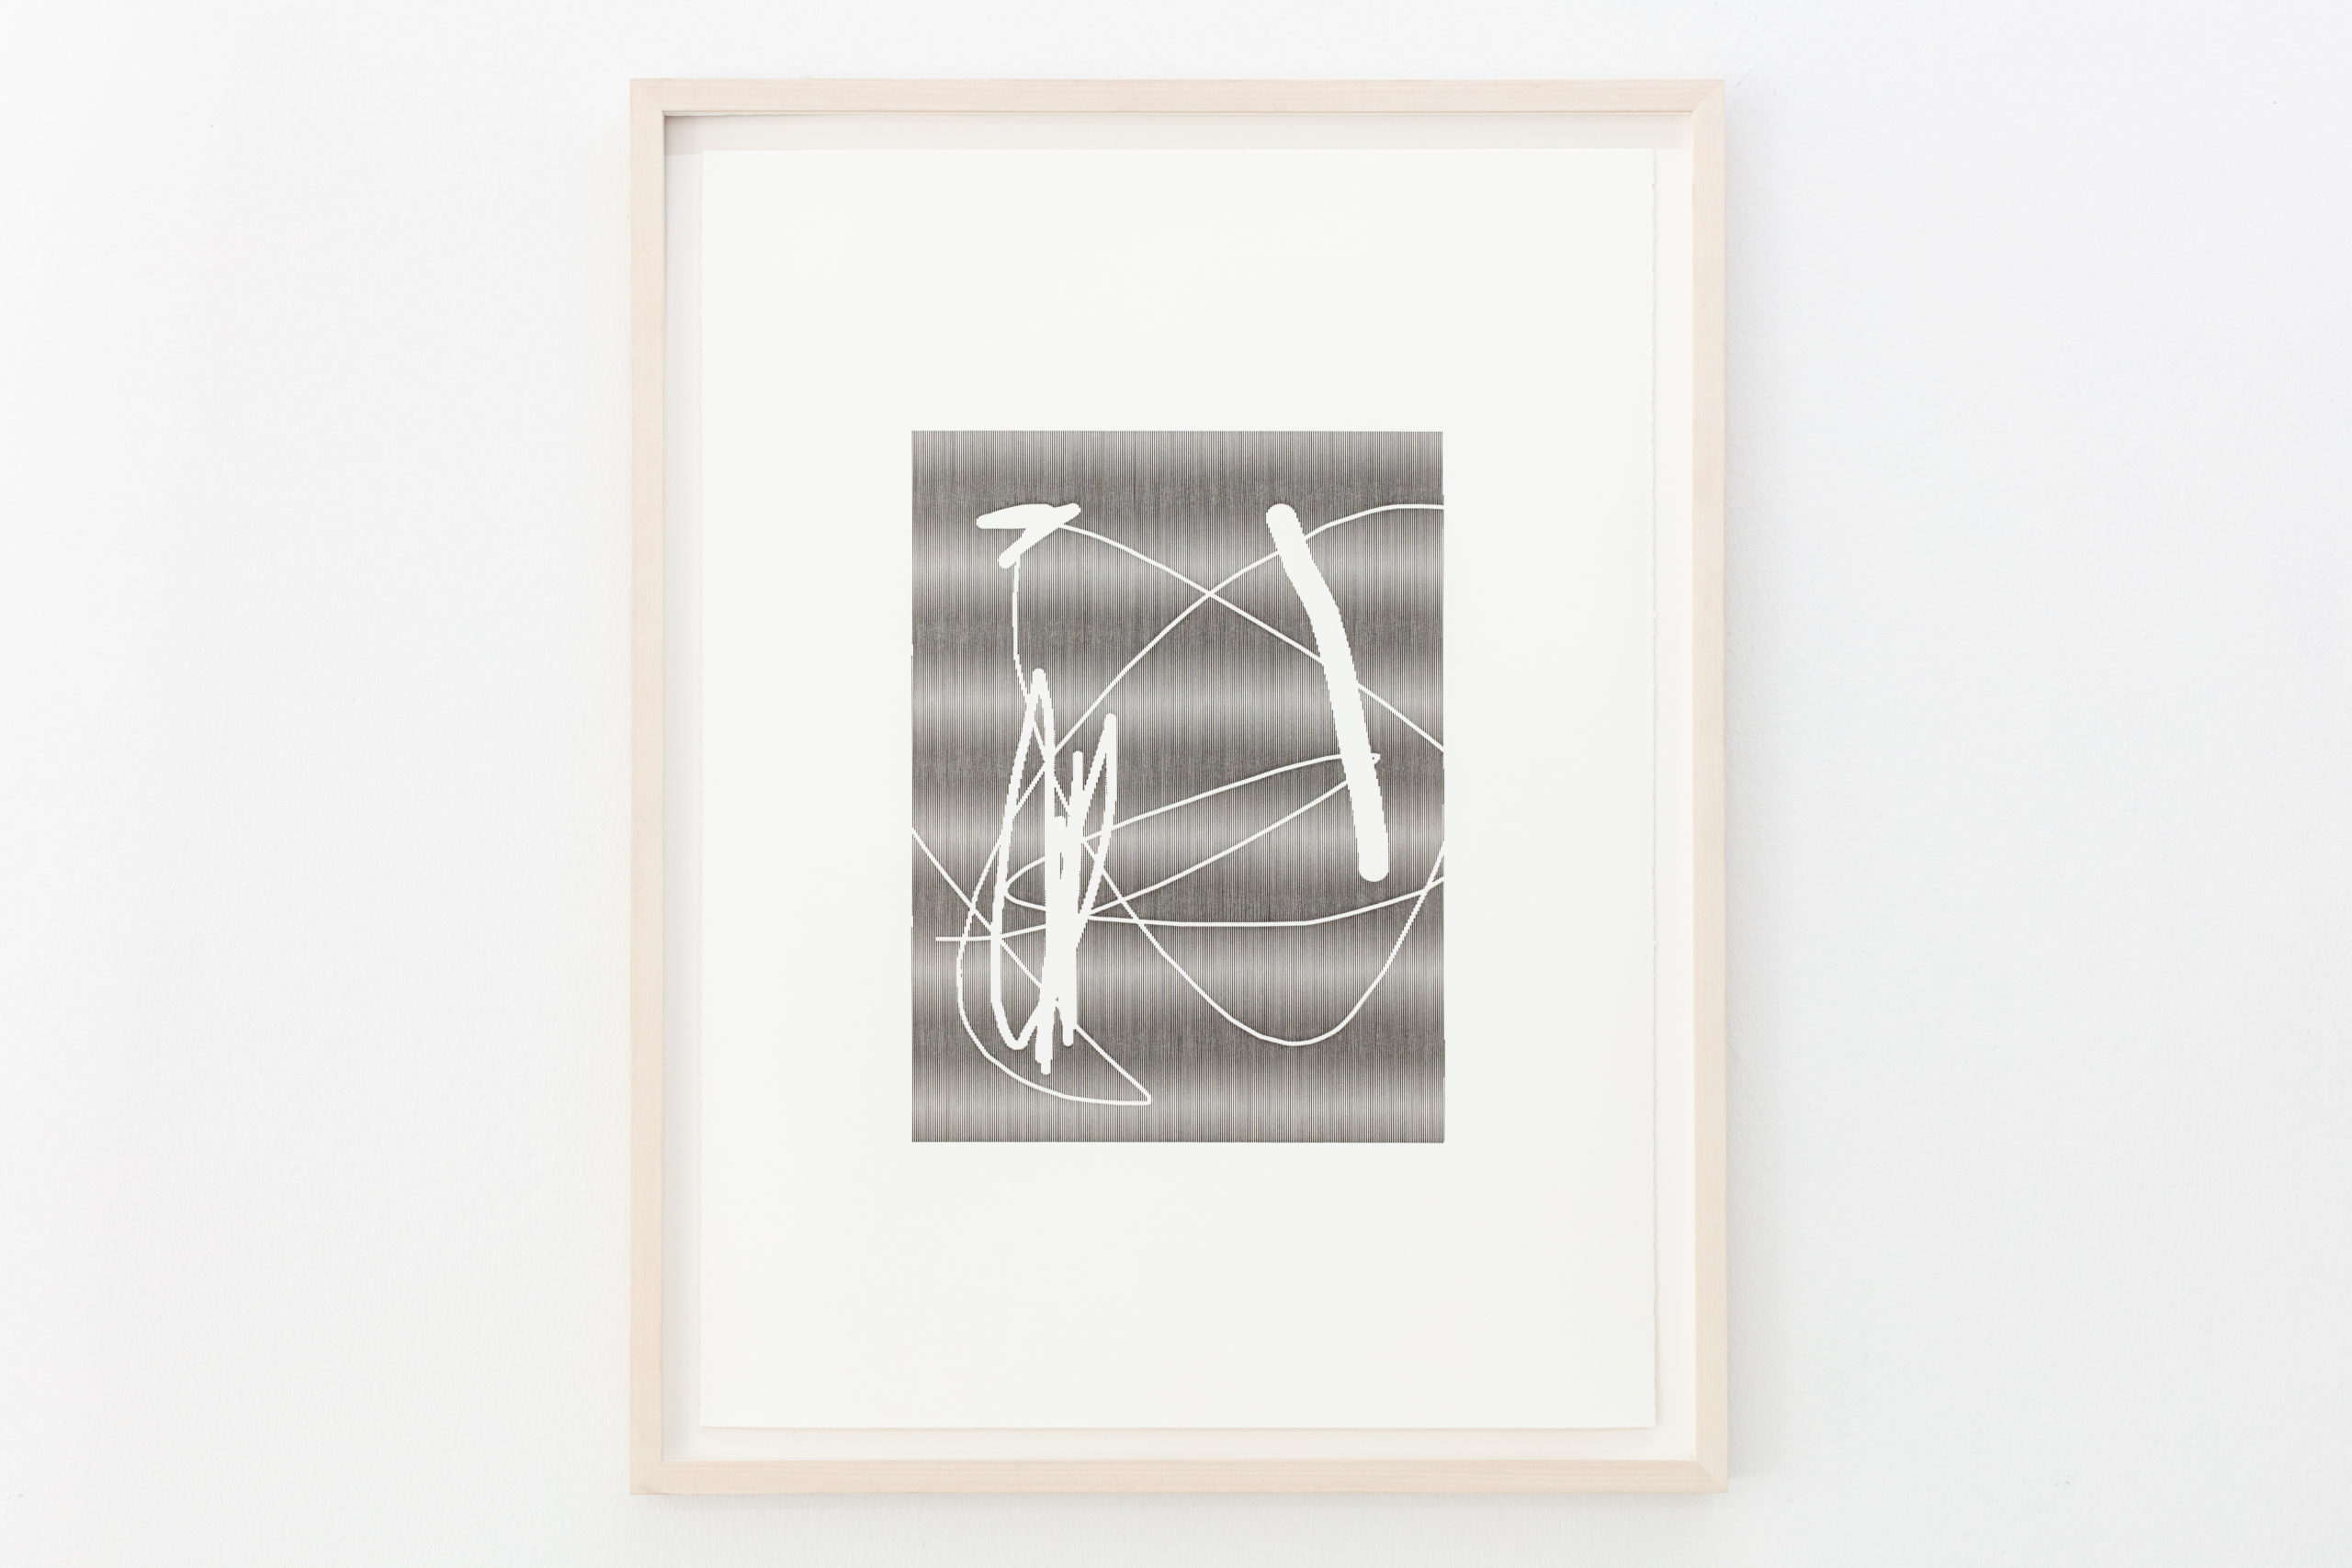 Arno Beck, Untitled, plotter drawing, ink on paper, 71 x 53 cm, 2020